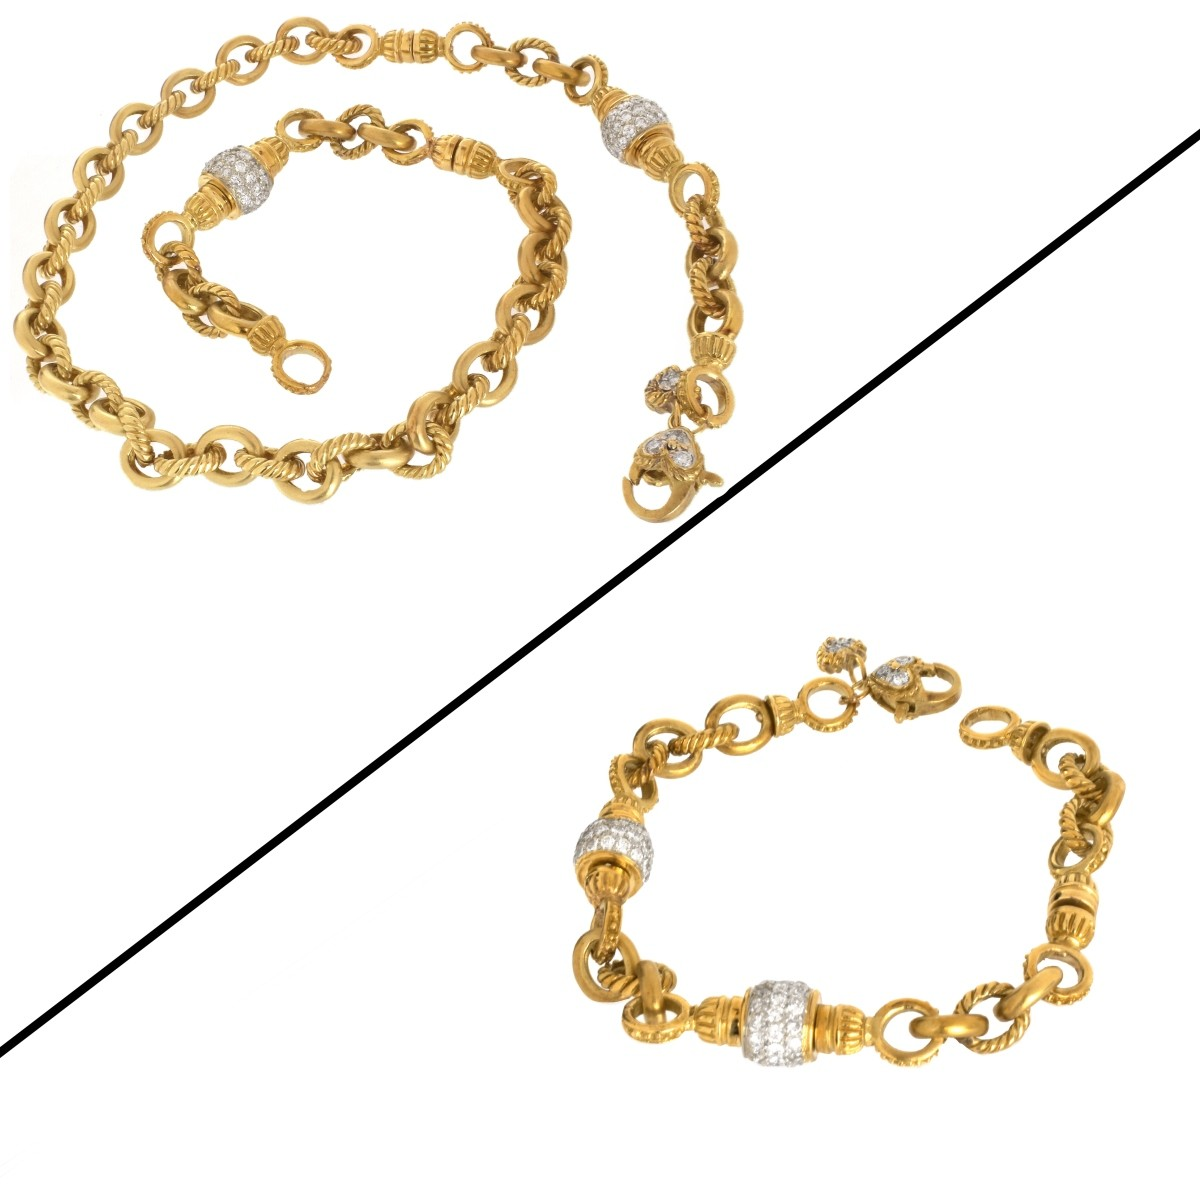 Diamond and 18K Necklace/Bracelet